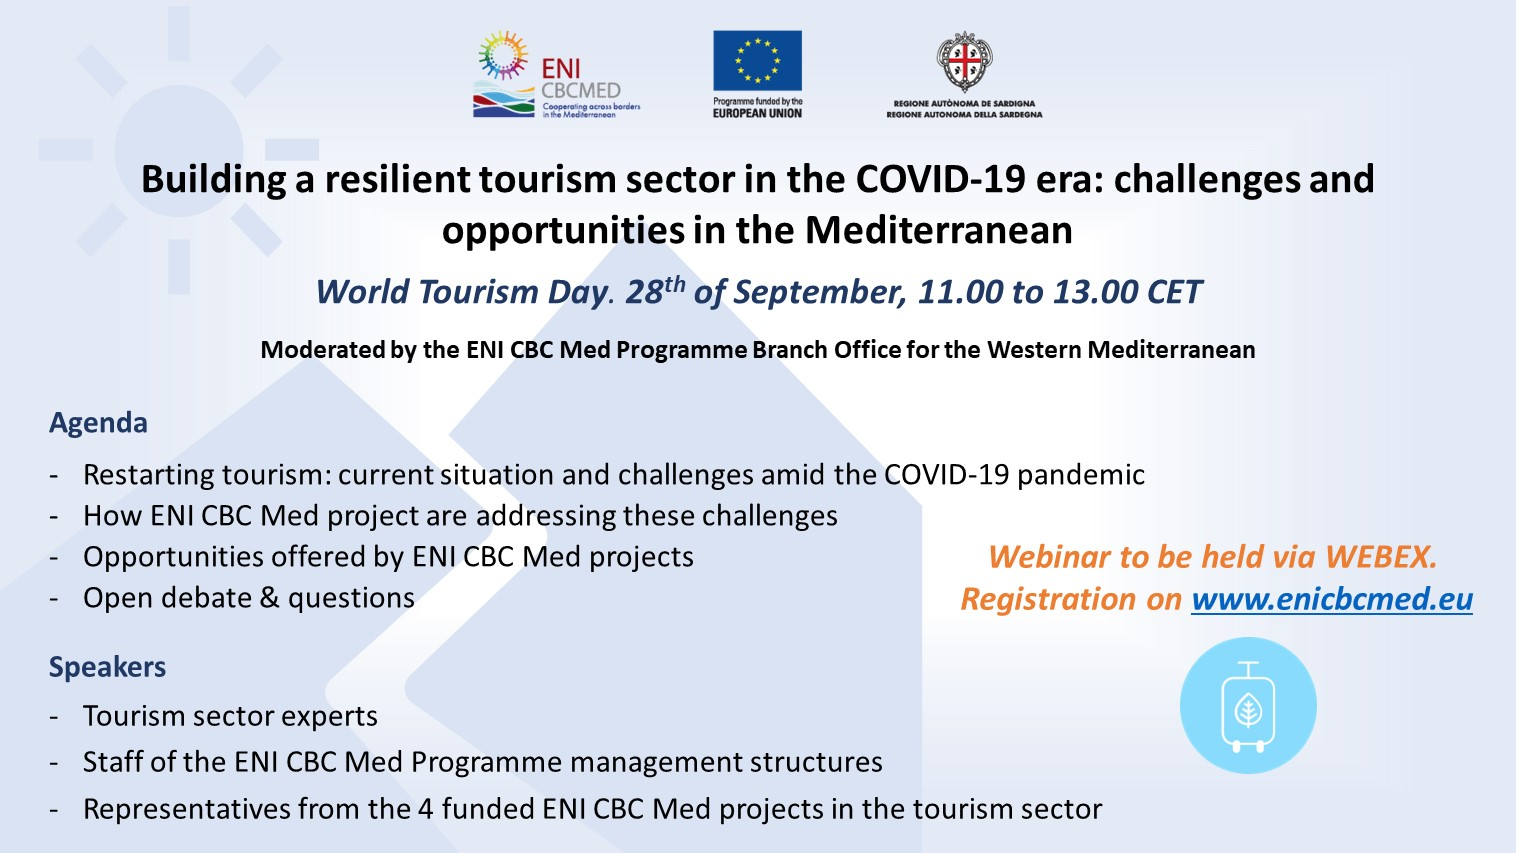 Building a resilient tourism sector in the COVID-19 era: challenges and opportunities in the Mediterranean